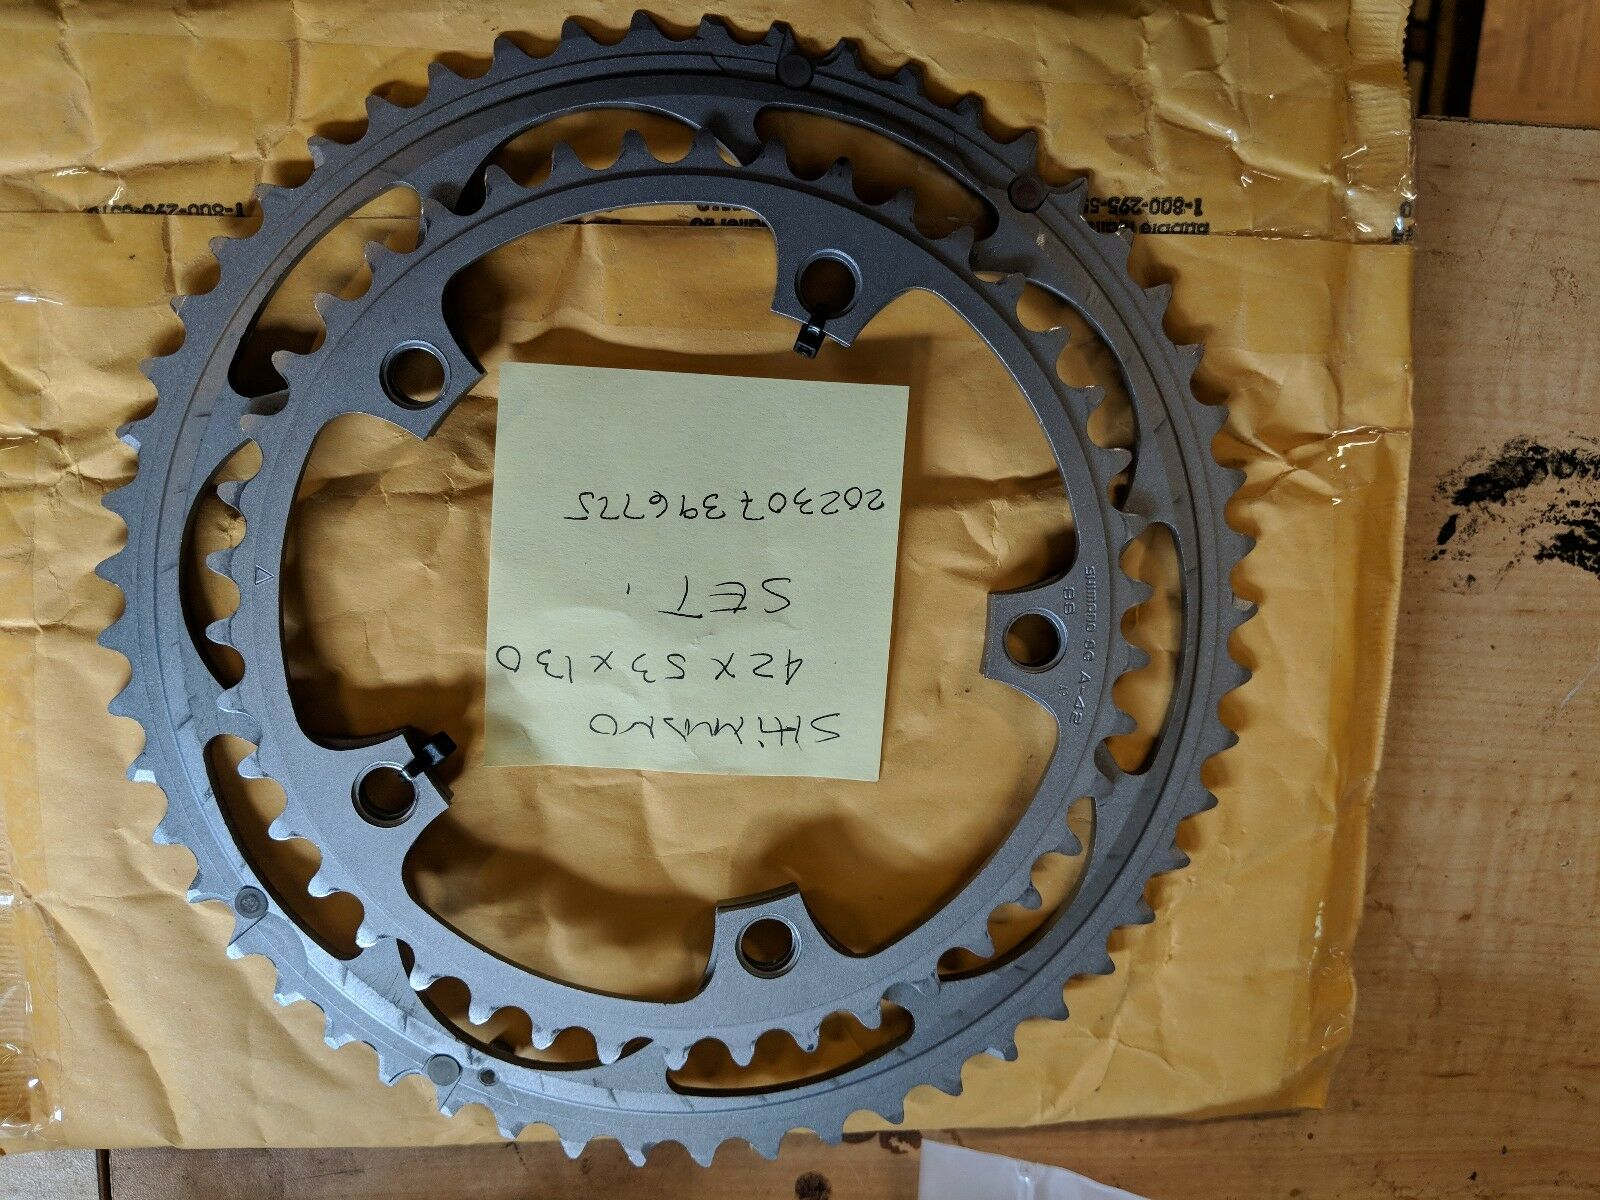 Shimano SG A53 SG 42 Chainring Set. 130bcd. 9 Speed